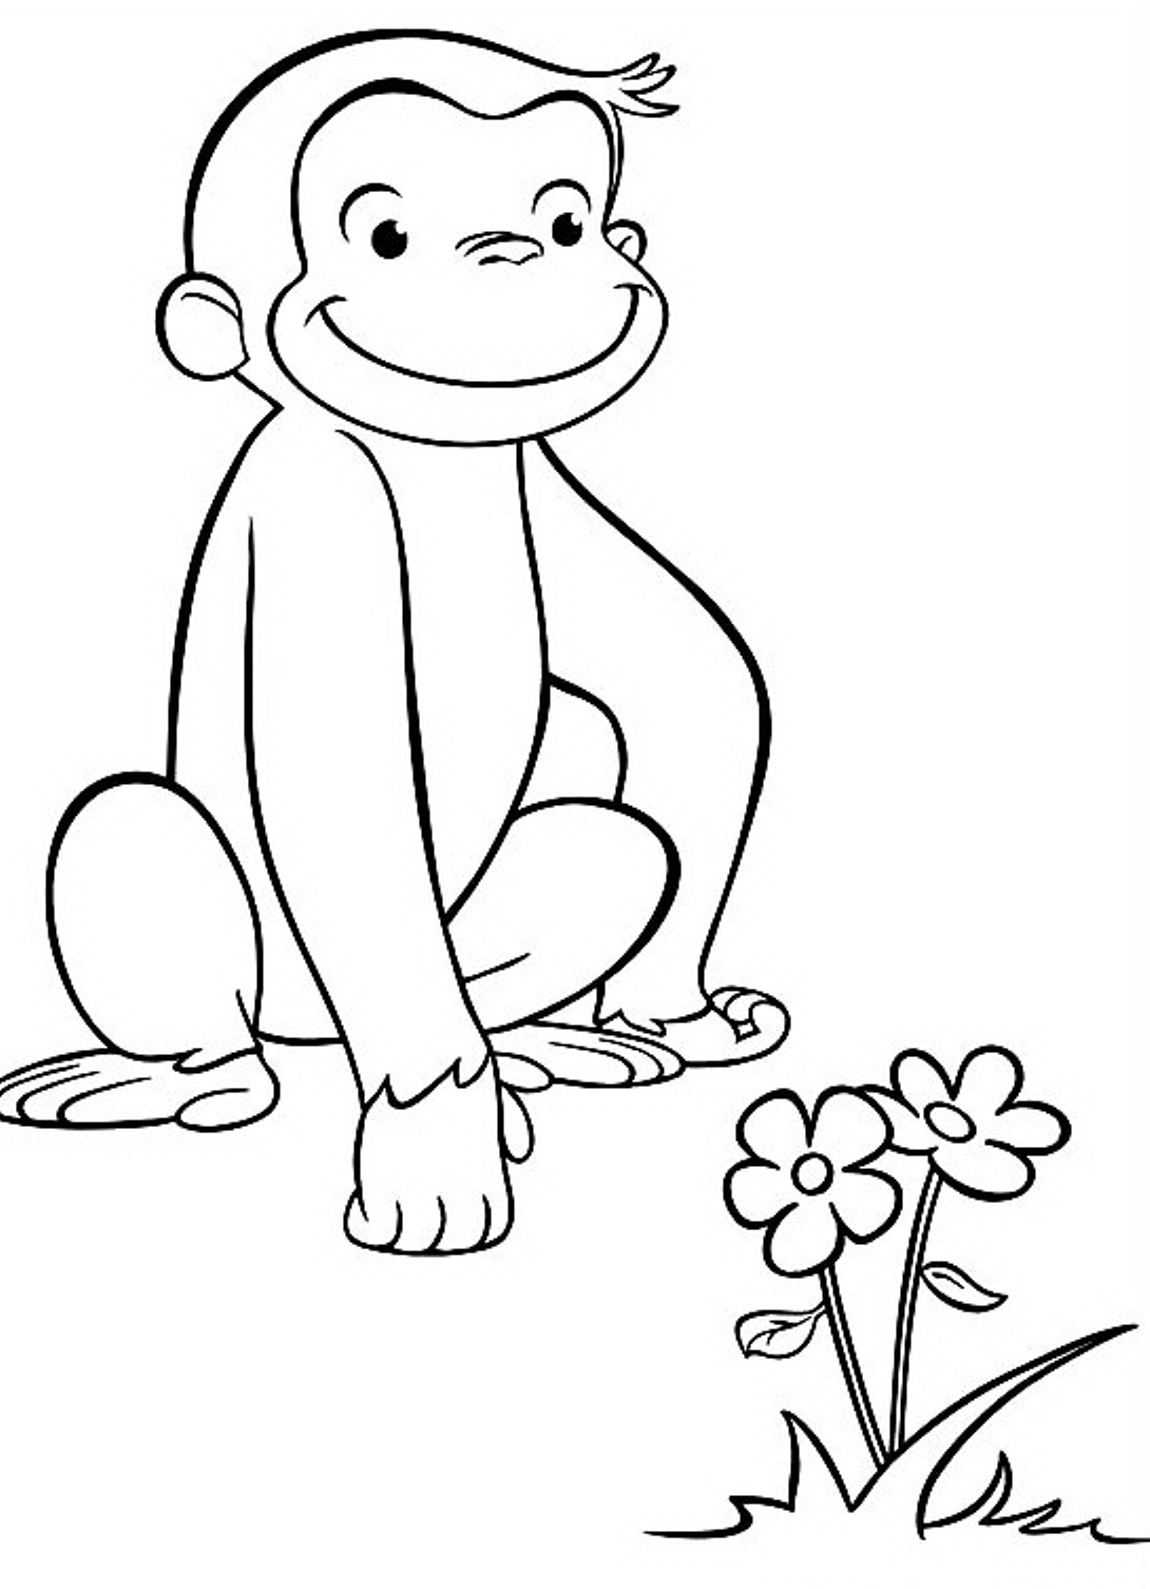 1150x1589 Curious George Drawing Curious George Coloring Pages Seeing Flower